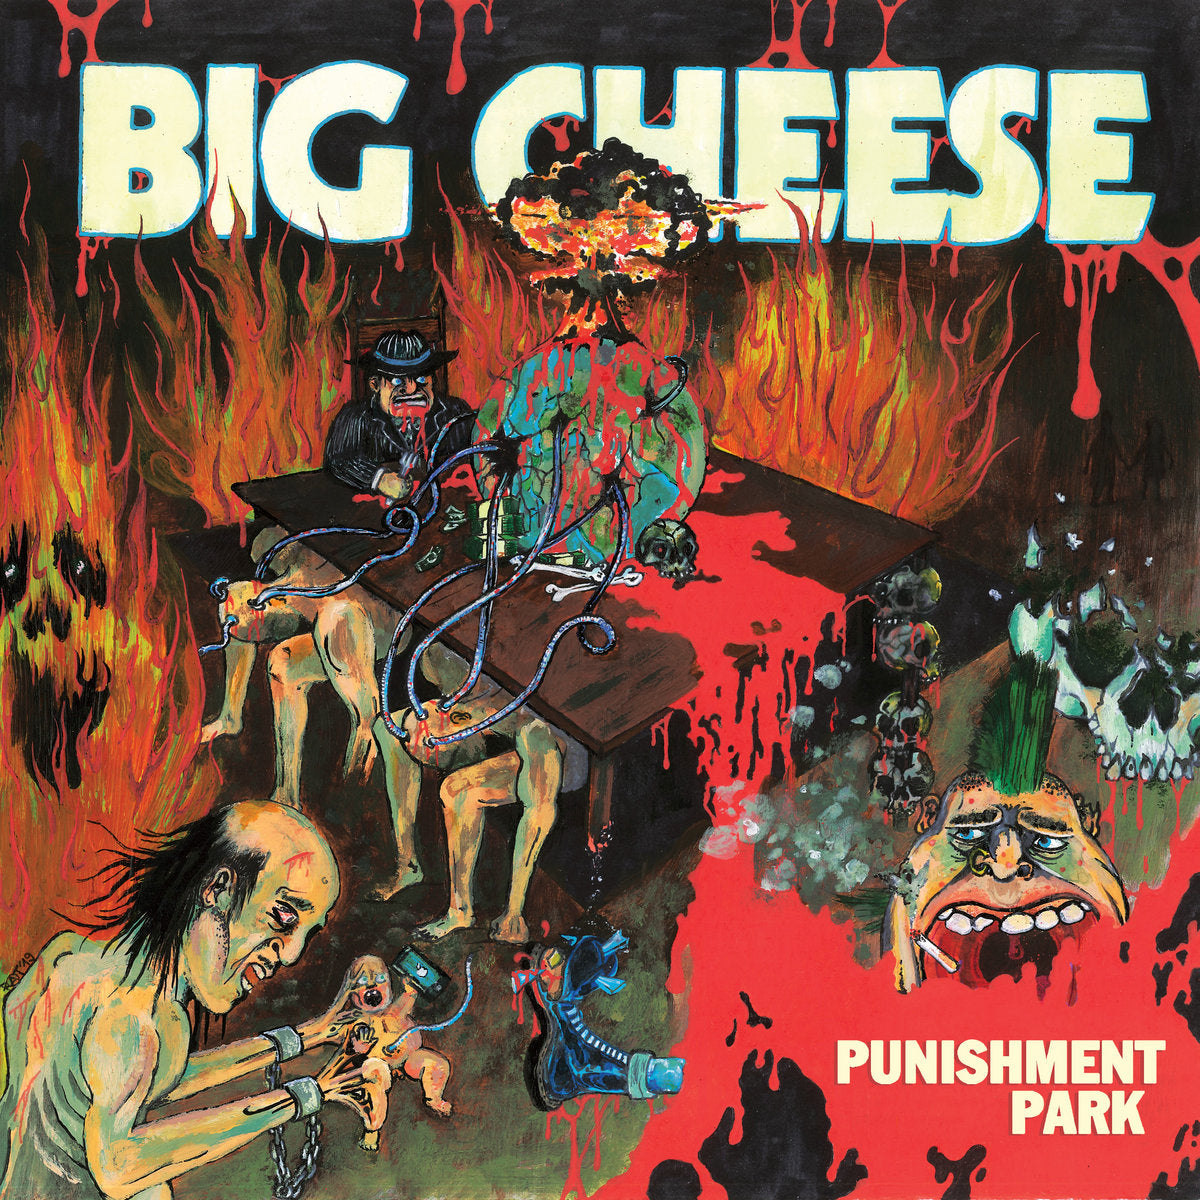 Big Cheese - Punishment Park LP - Vinyl